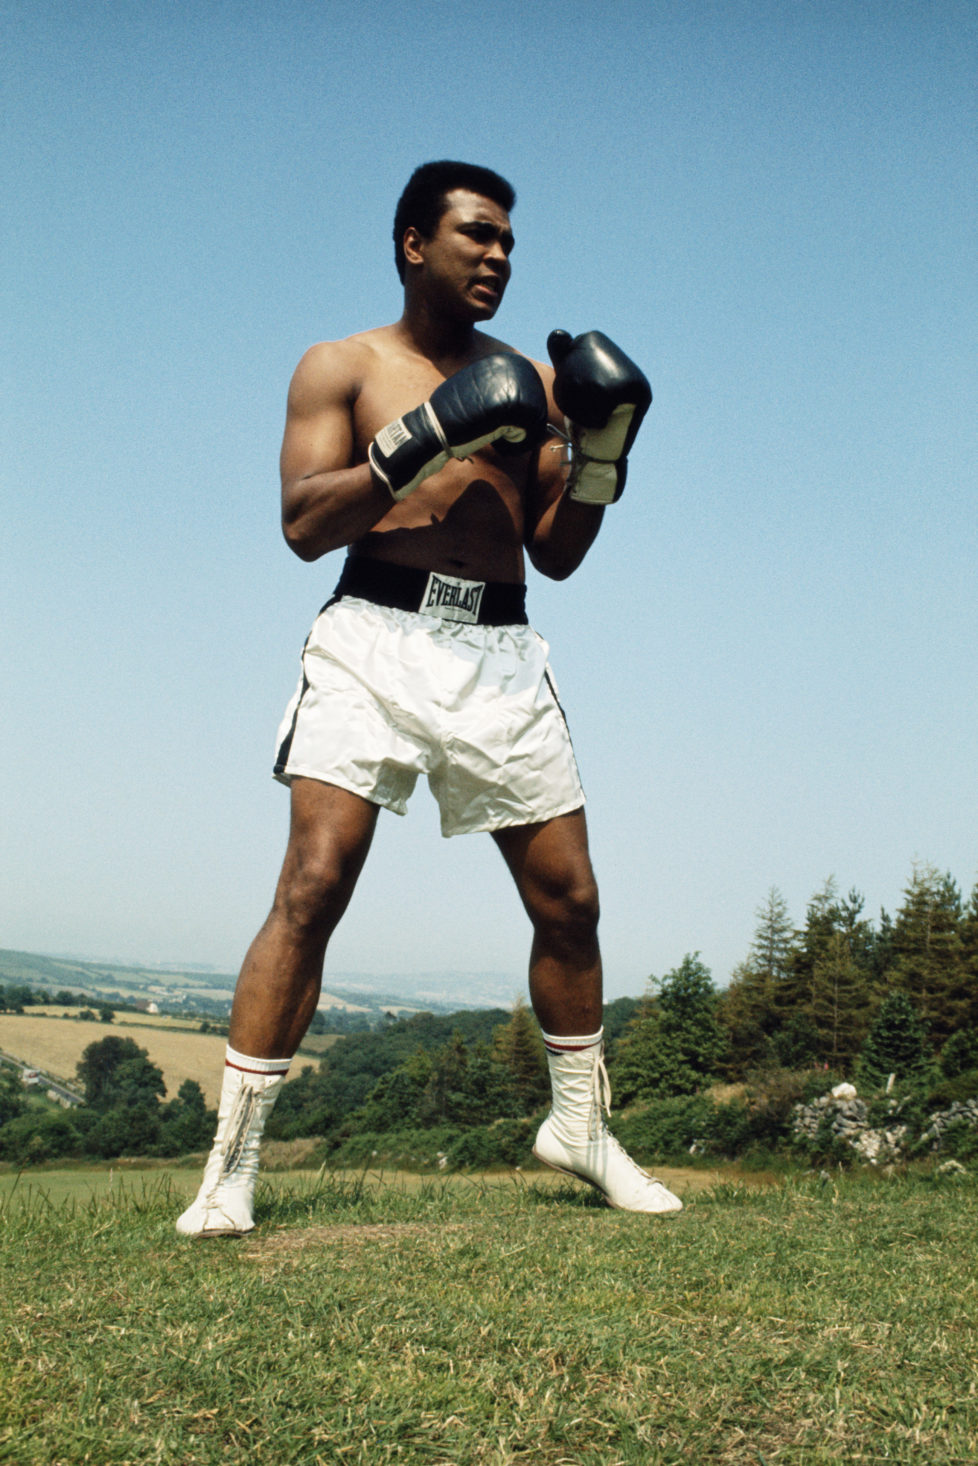 Muhammad Ali during training on 10 July 1972 for his fight with Al 'Blue' Lewis held at Croke Park in Dublin, Republic of Ireland. (Photo by Don Morley/Getty Images)